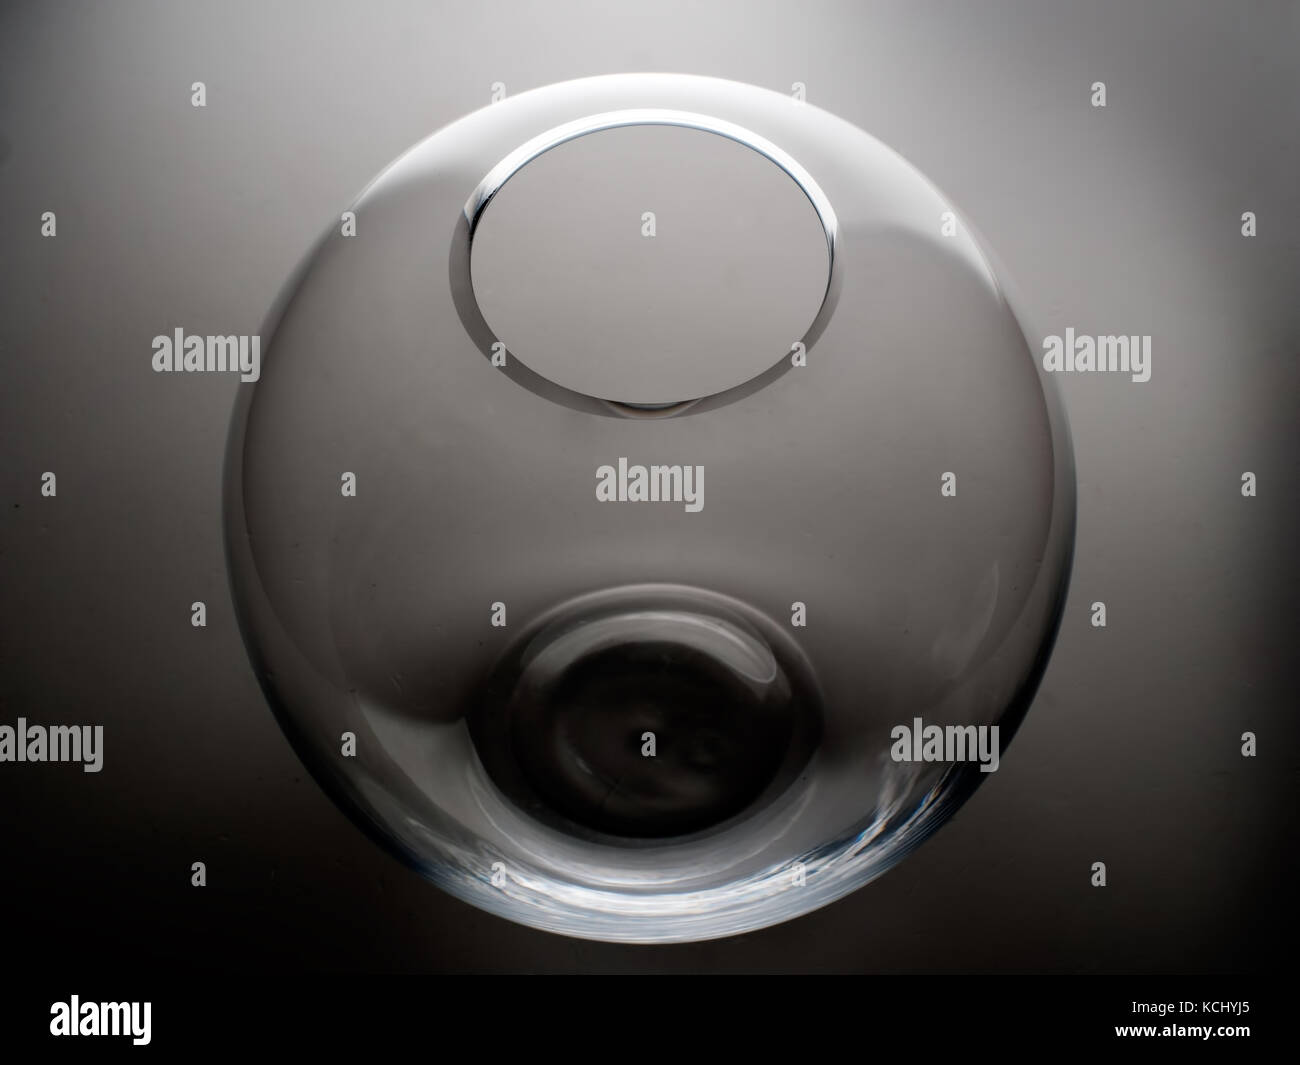 Empty goldfish bowl from an unusual angle - abstract. - Stock Image